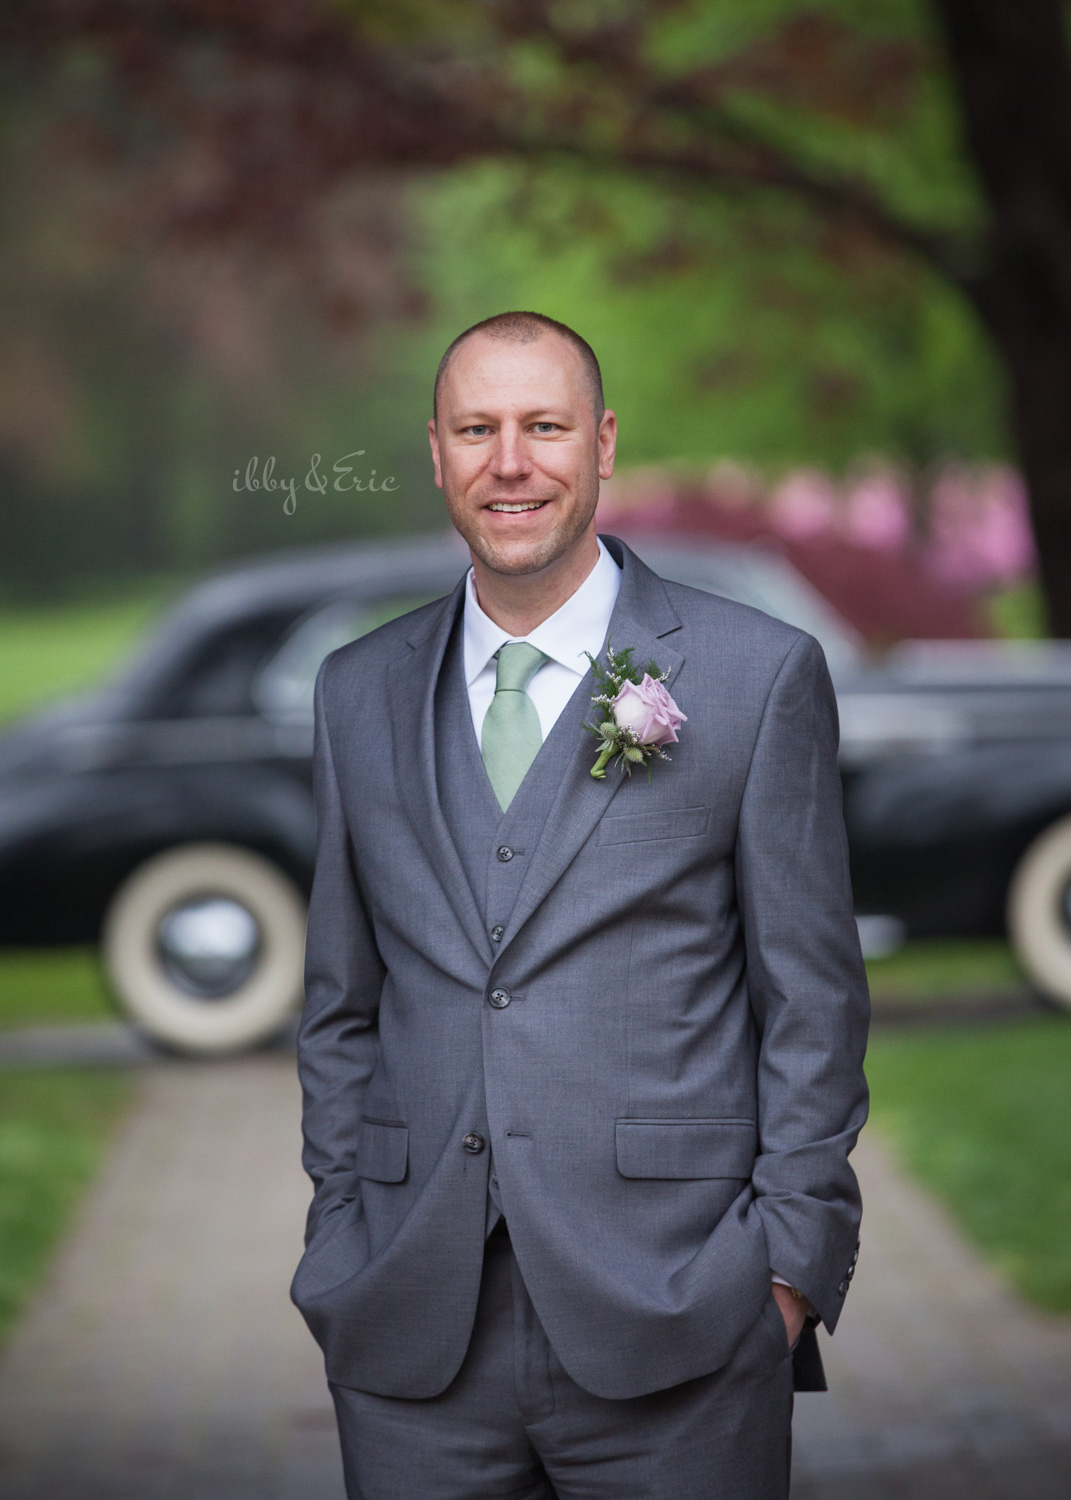 Groom in a gray suit with green tie and purple boutonniere stands with his hands in his pockets.